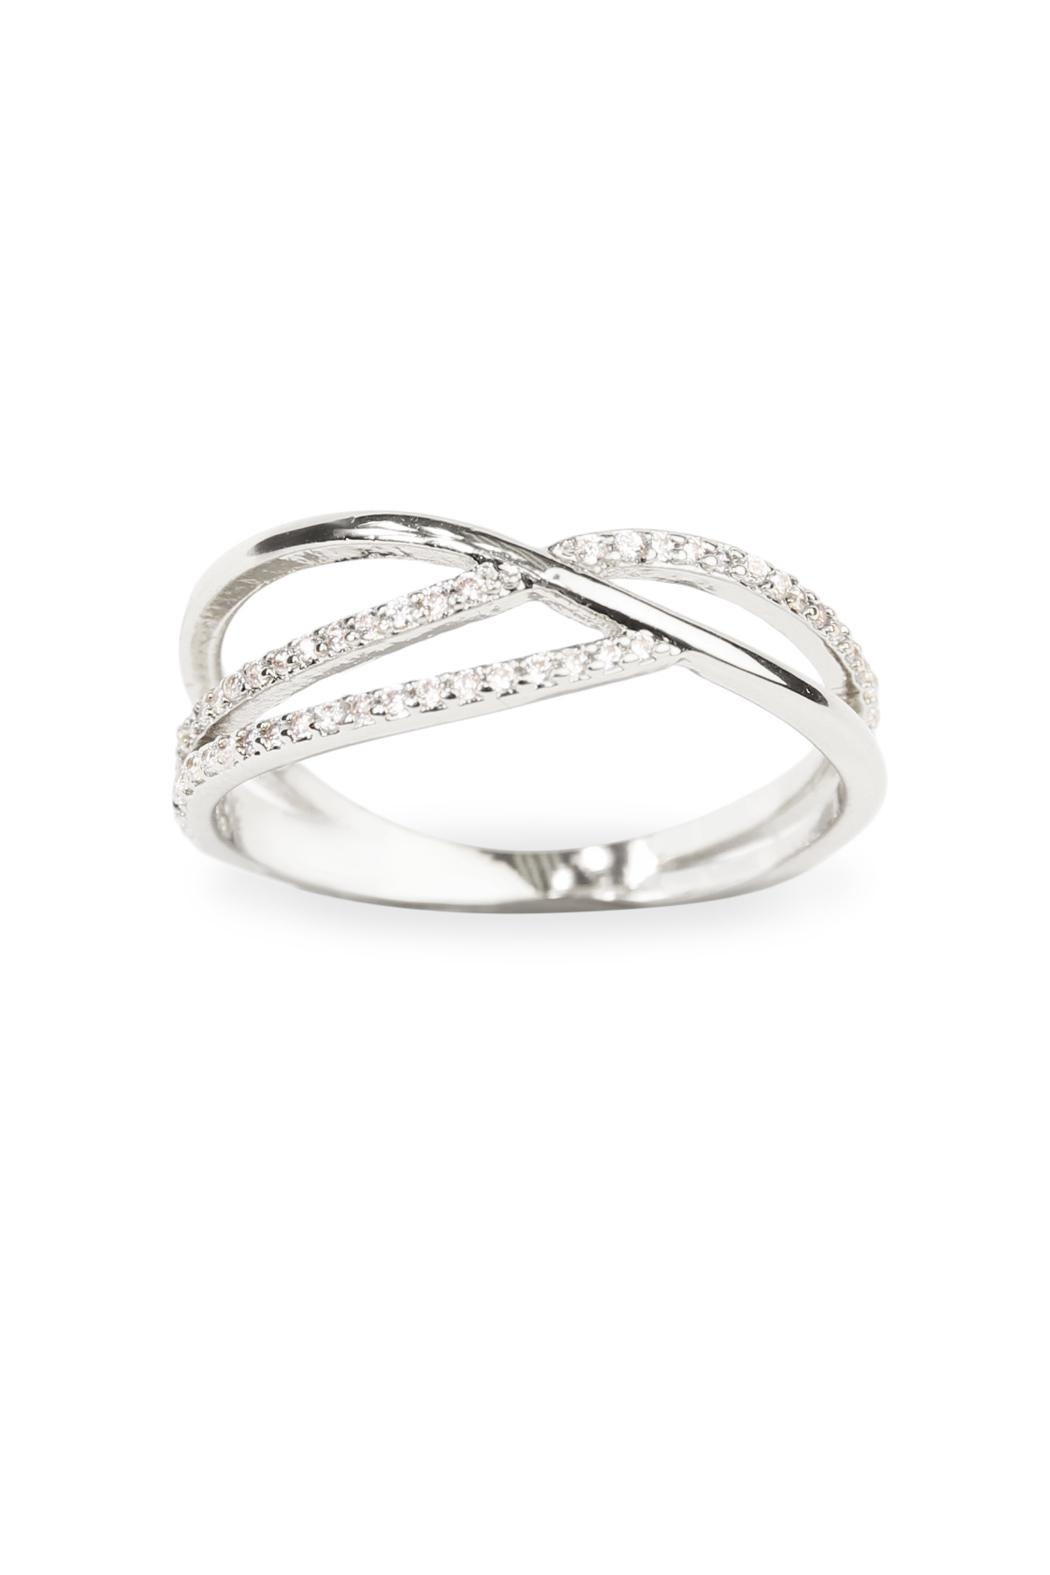 Riah Fashion Infinity Wave Closed Ring From California